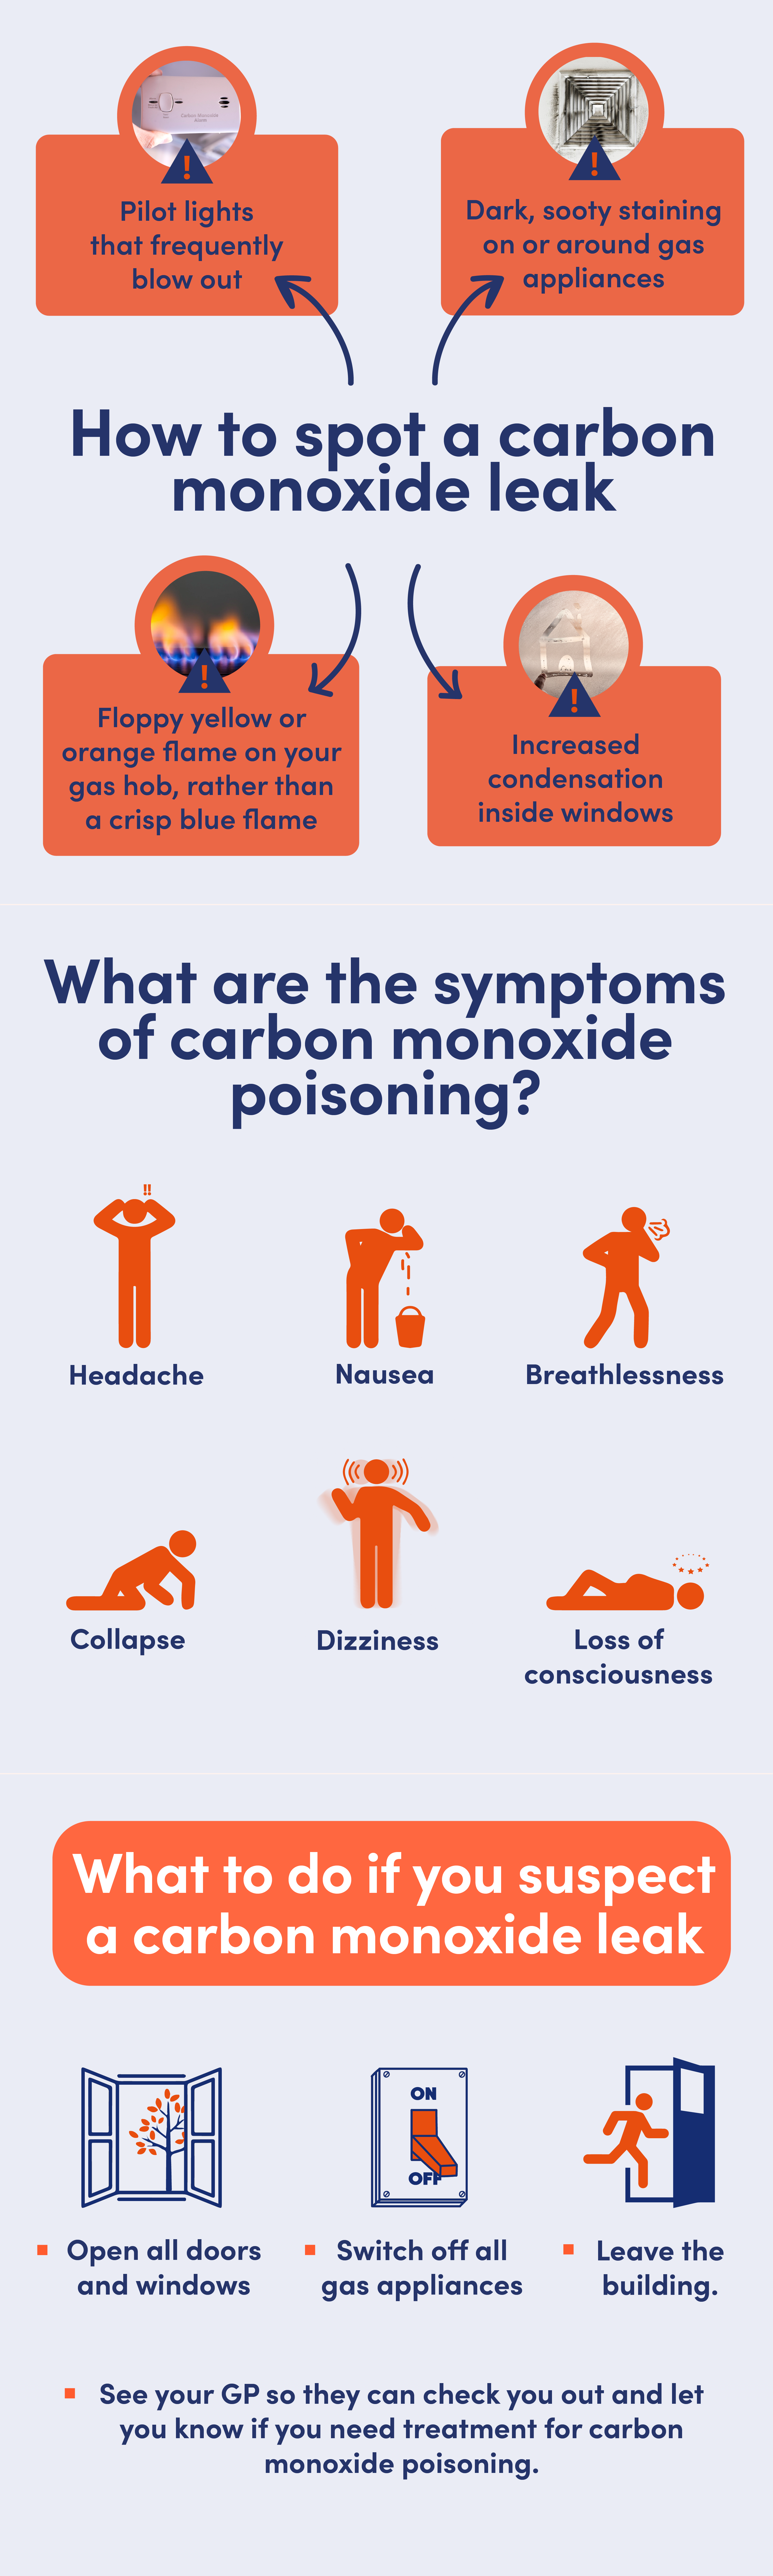 Infographic showing how to spot a carbon monoxide leak, what to do if you spot one, and the symptoms of carbon monoxide poisoning